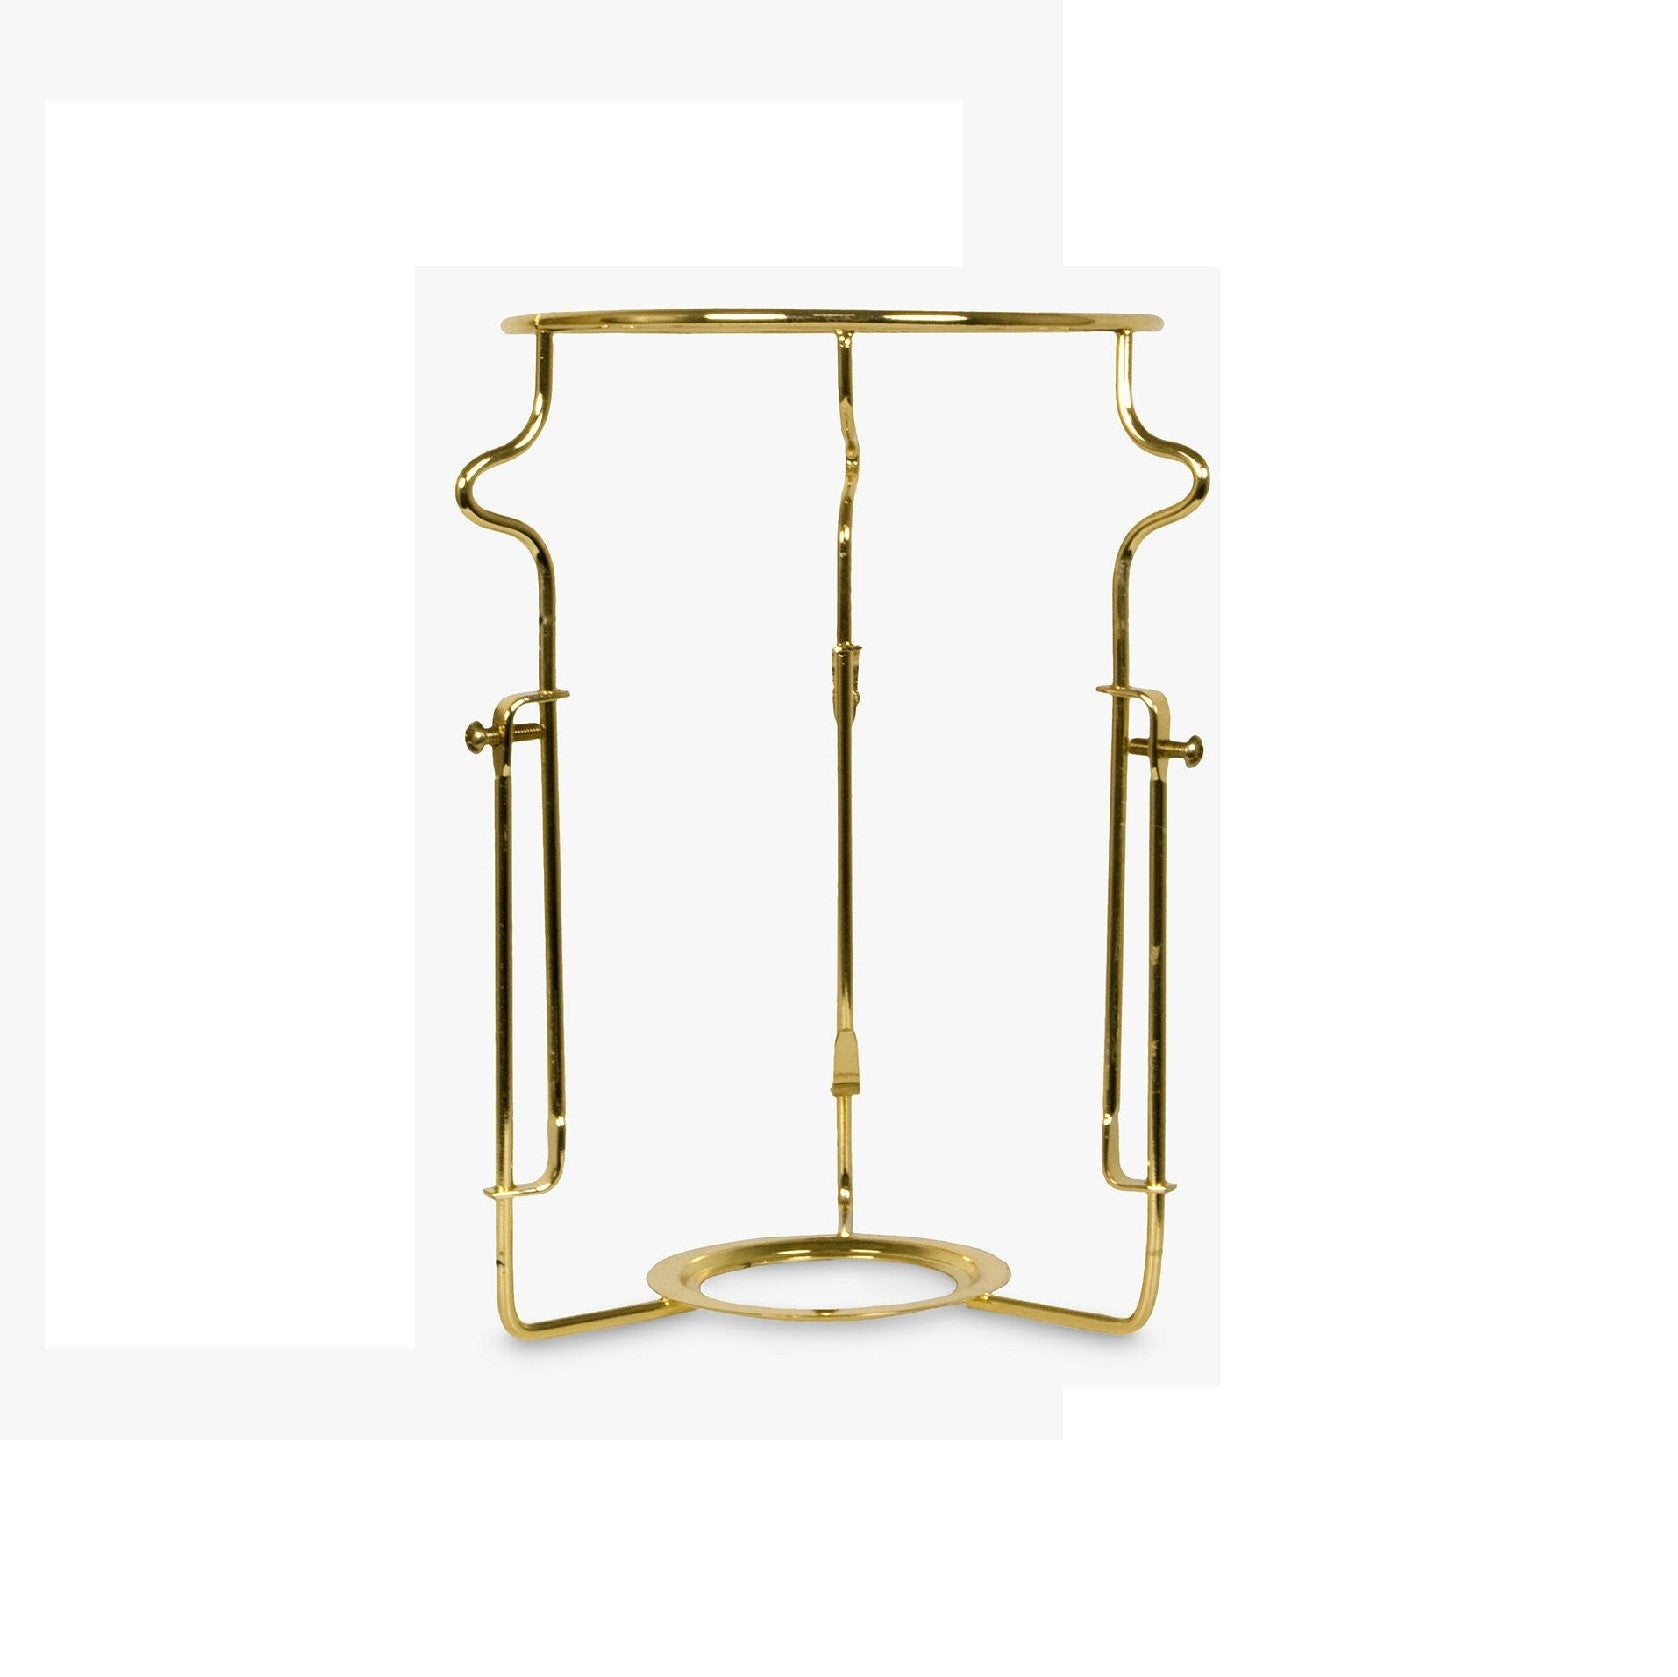 Additional Brass Lampshade Carrier